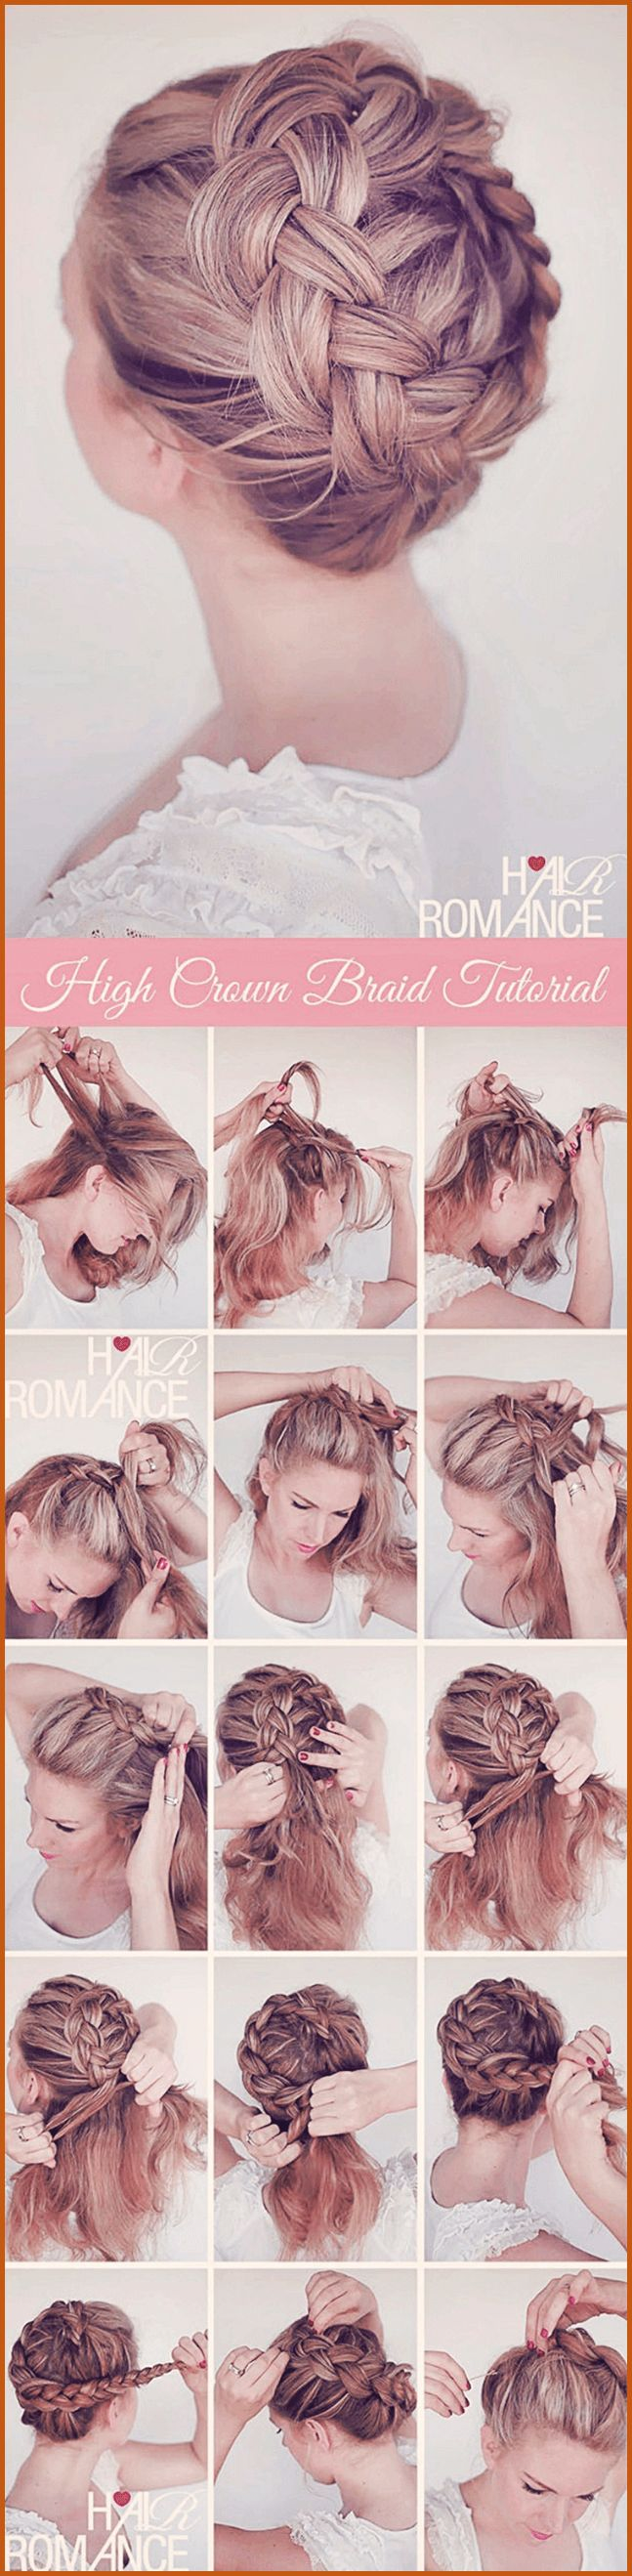 Look regal and pristine attending special occasions with this royal hairstyle.